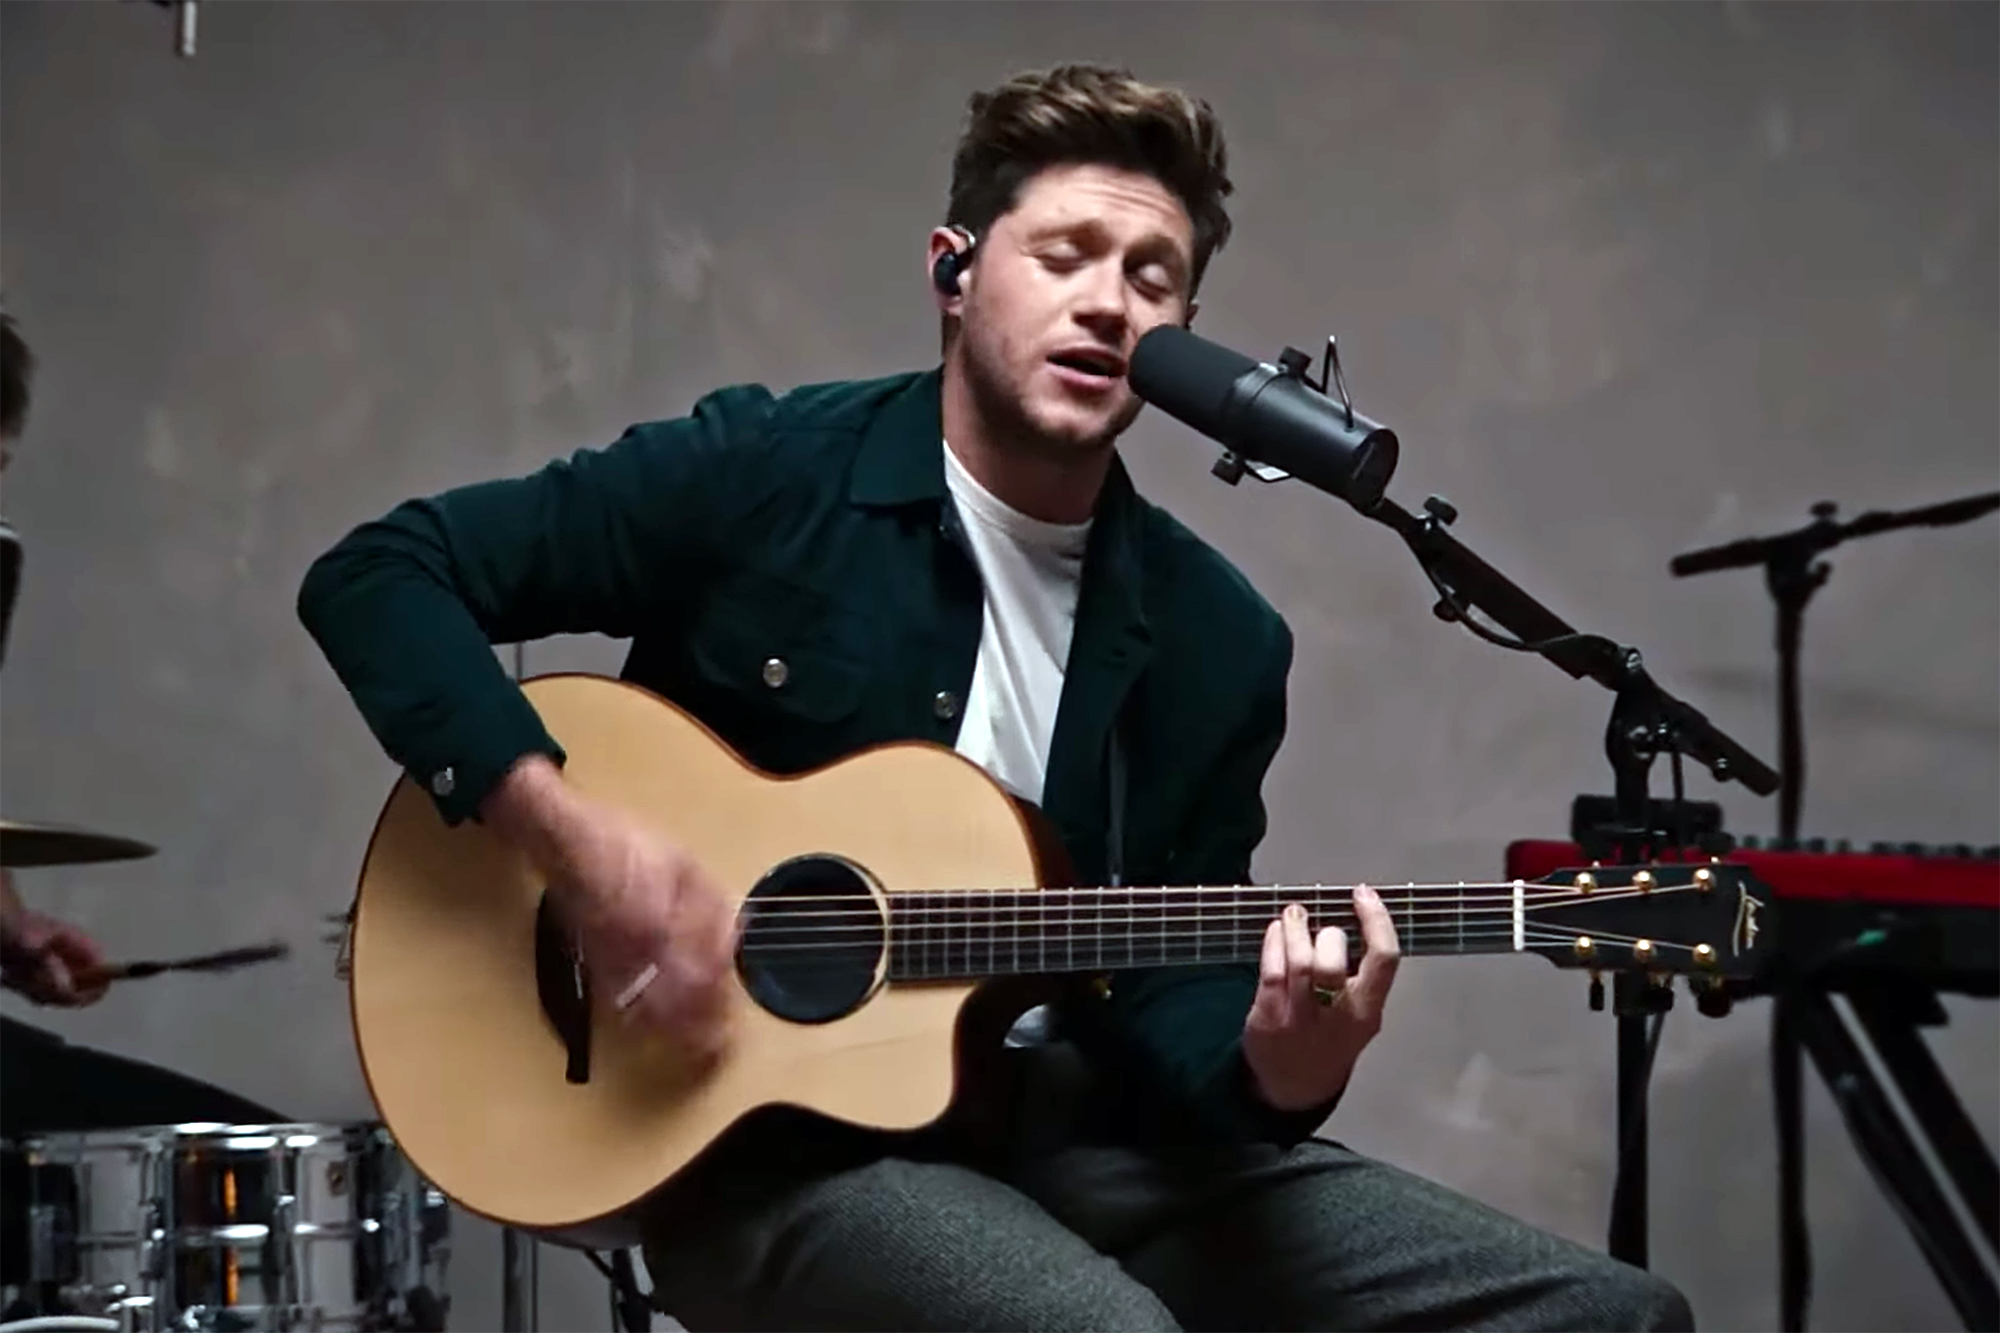 Watch Niall Horan Perform Acoustic Version of 'Nice to Meet Ya' - Rolling Stone